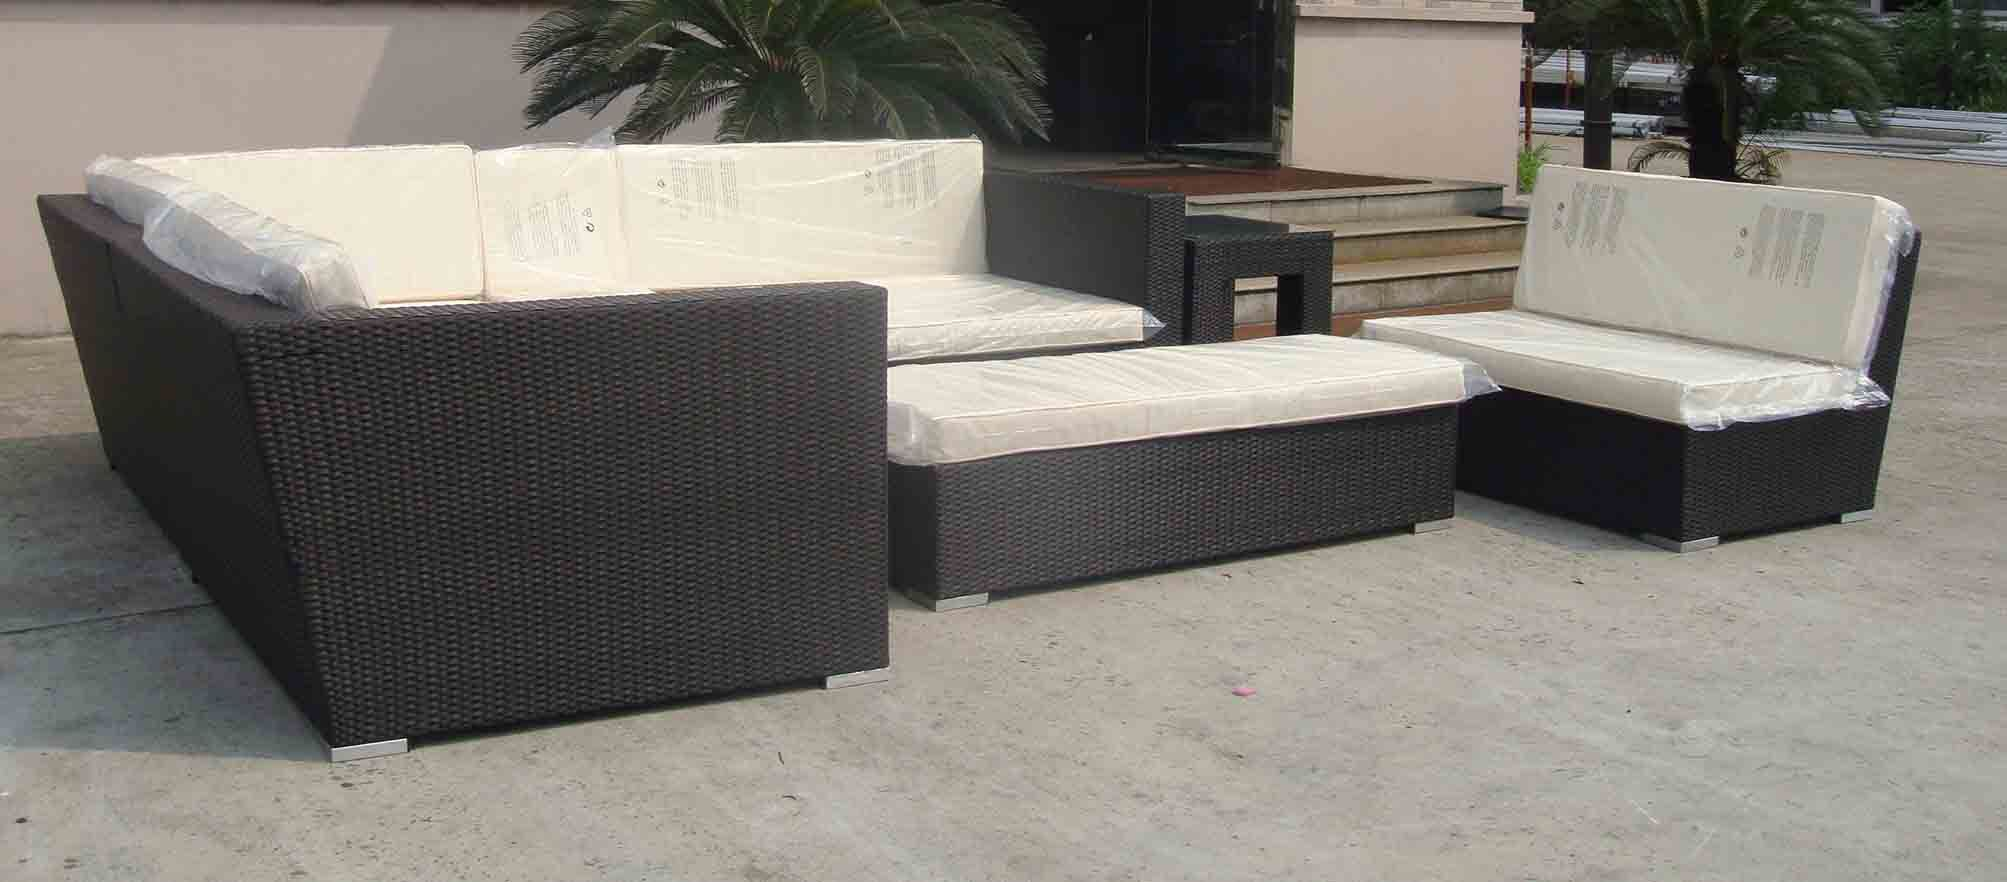 Living room set rattan sofa set trygo furniture rattan furniture